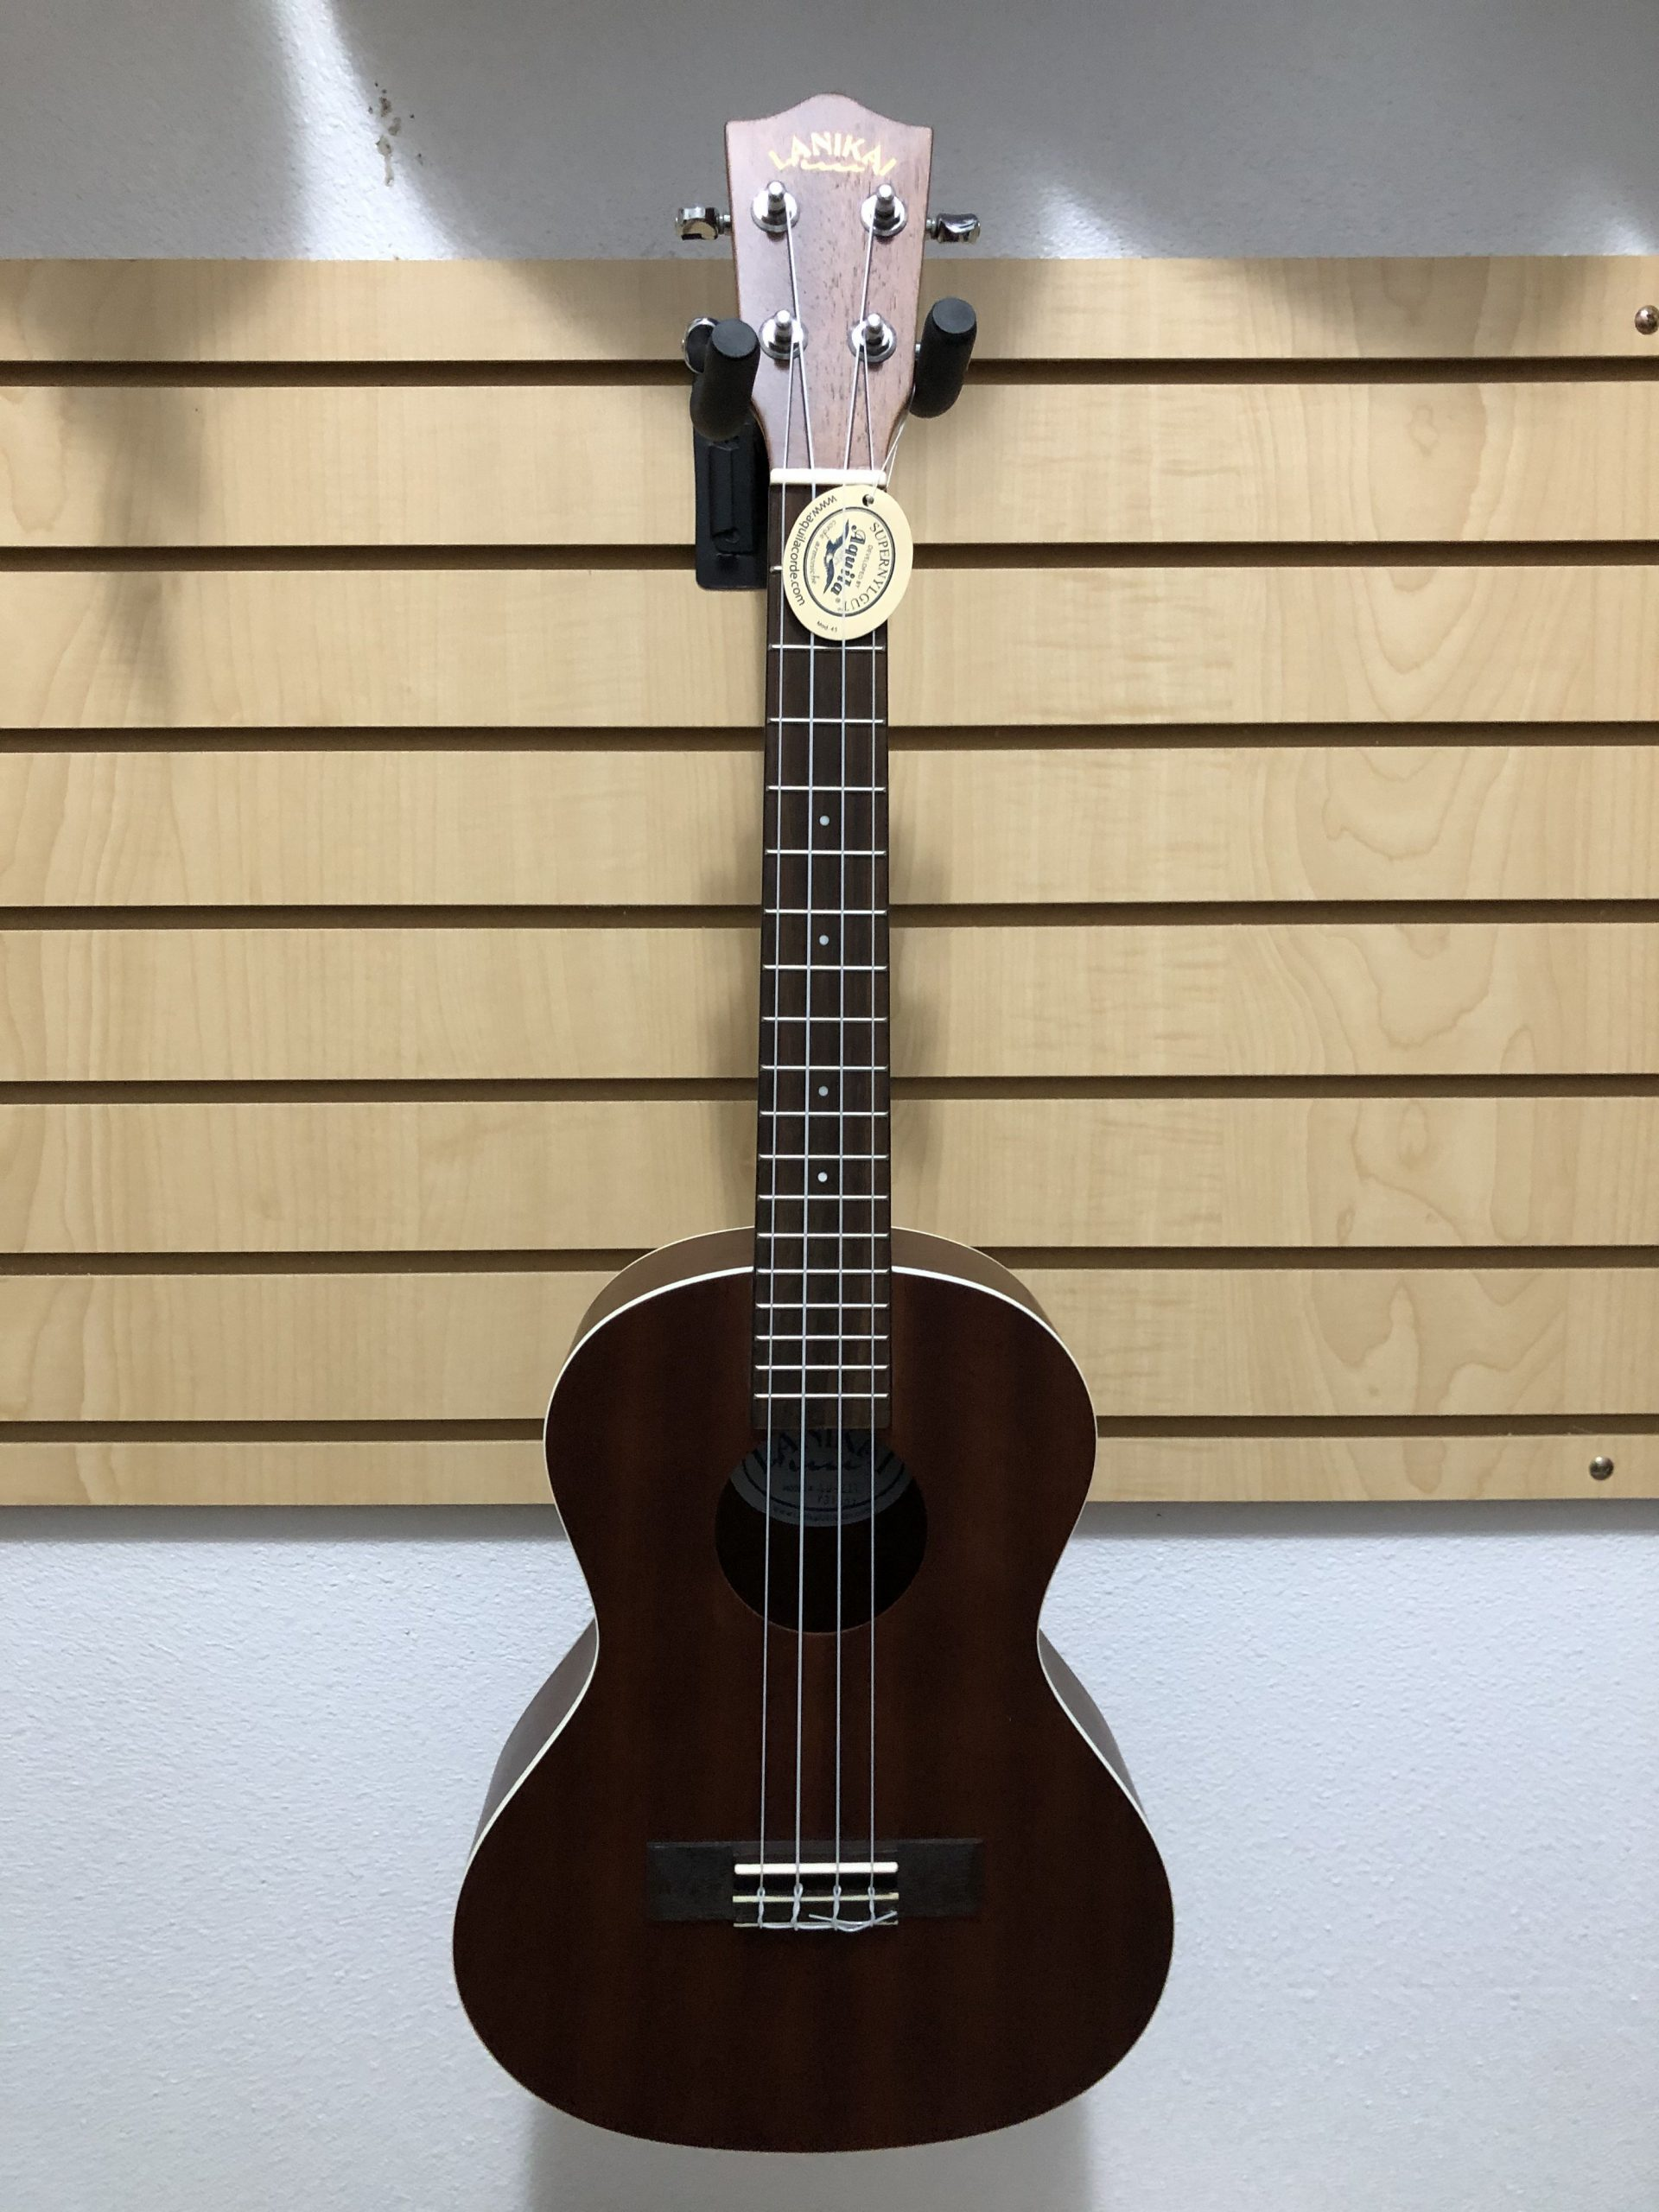 Lanakai LU-21-T Tenor Ukulele – Sweet Combination of New Woods in a Classic Tenor Design